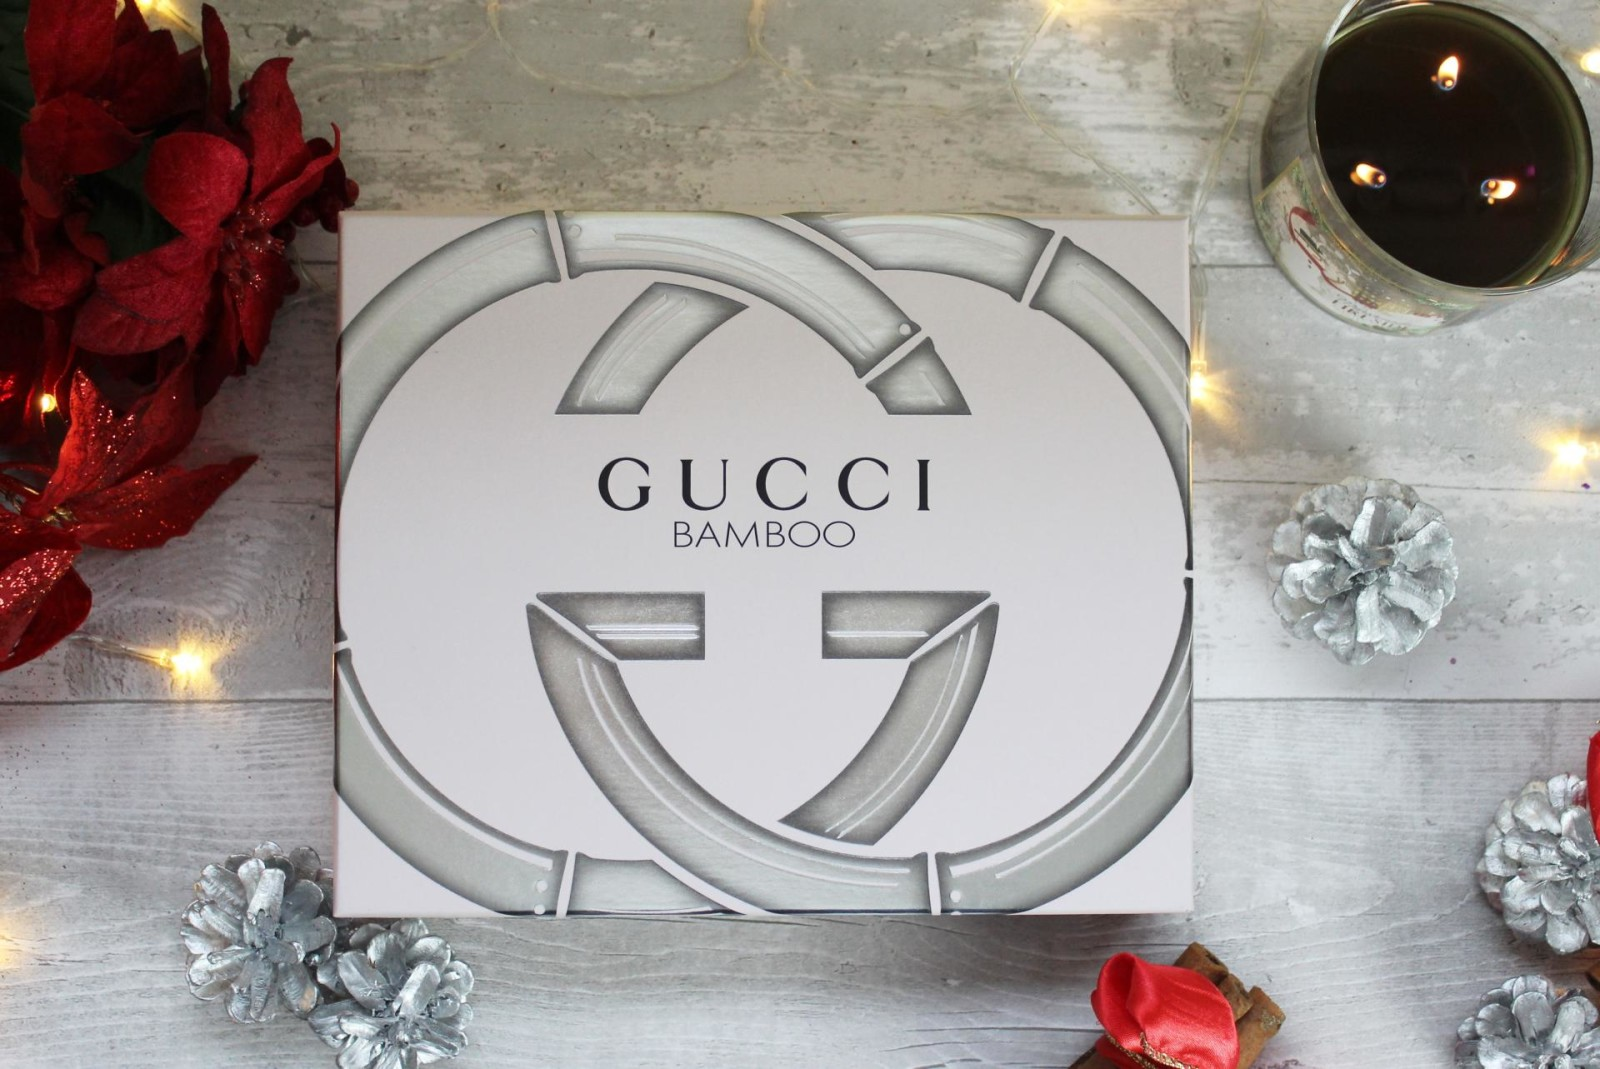 Gucci Bamboo gift set The Perfume Shop